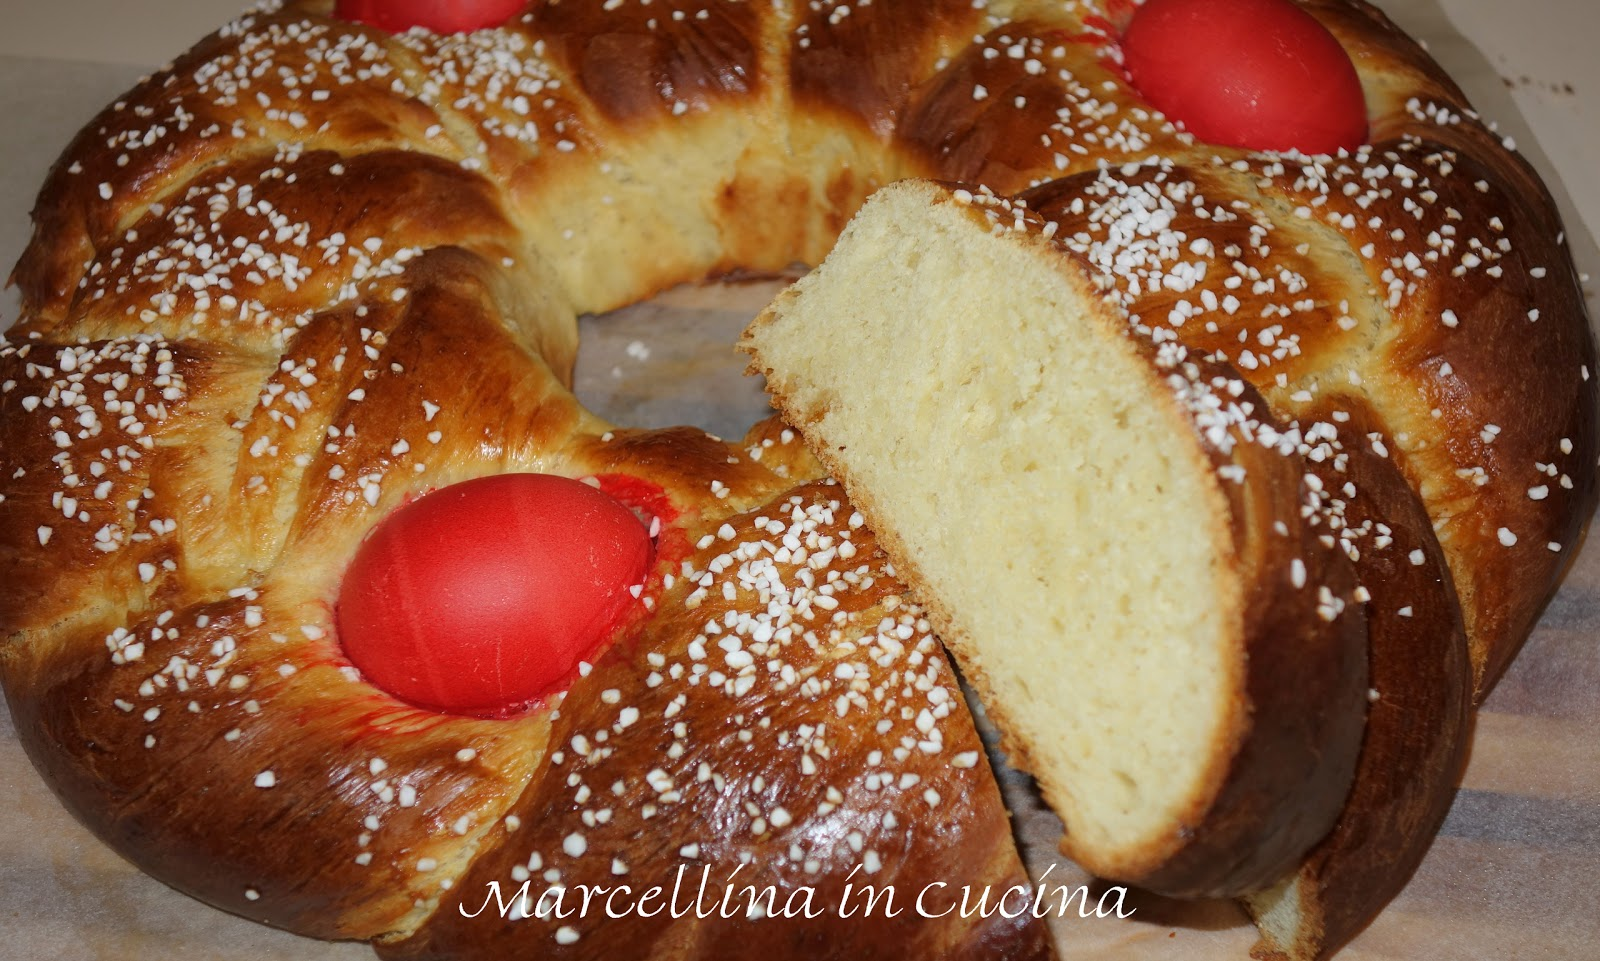 Marcellina in Cucina: Italian Easter Bread with a Greek twist